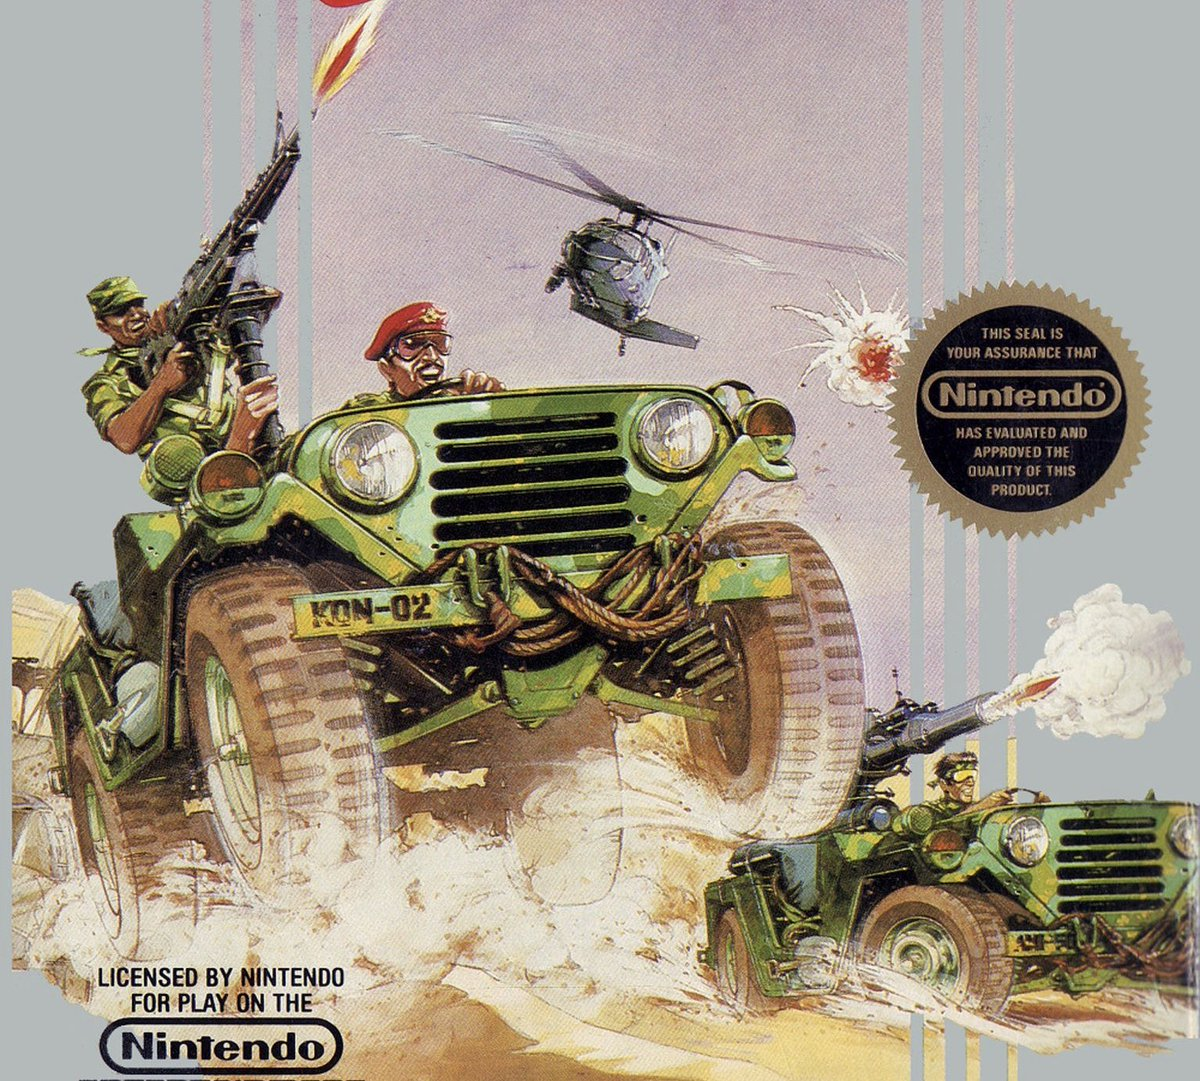 Can you name this #NES game from its box art? #Nintendo #RETROGAMING #gamer #GamersUnite #Videogame #games https://t.co/3BUNKNyWsR